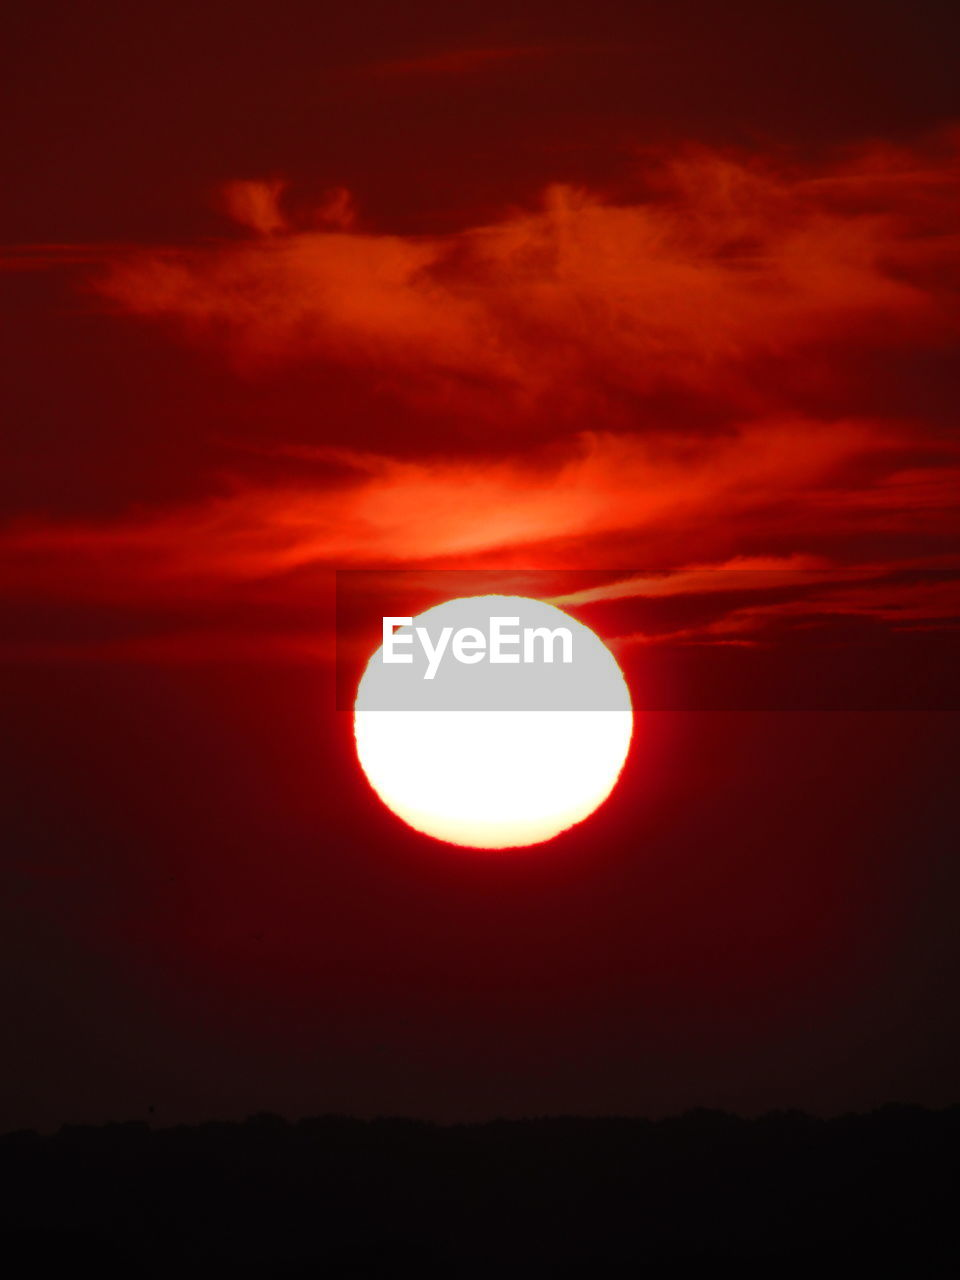 sun, beauty in nature, sky, scenics, orange color, sunset, tranquil scene, nature, outdoors, moon, solar eclipse, low angle view, cloud - sky, silhouette, red, no people, natural phenomenon, sunlight, tranquility, technology, astronomy, day